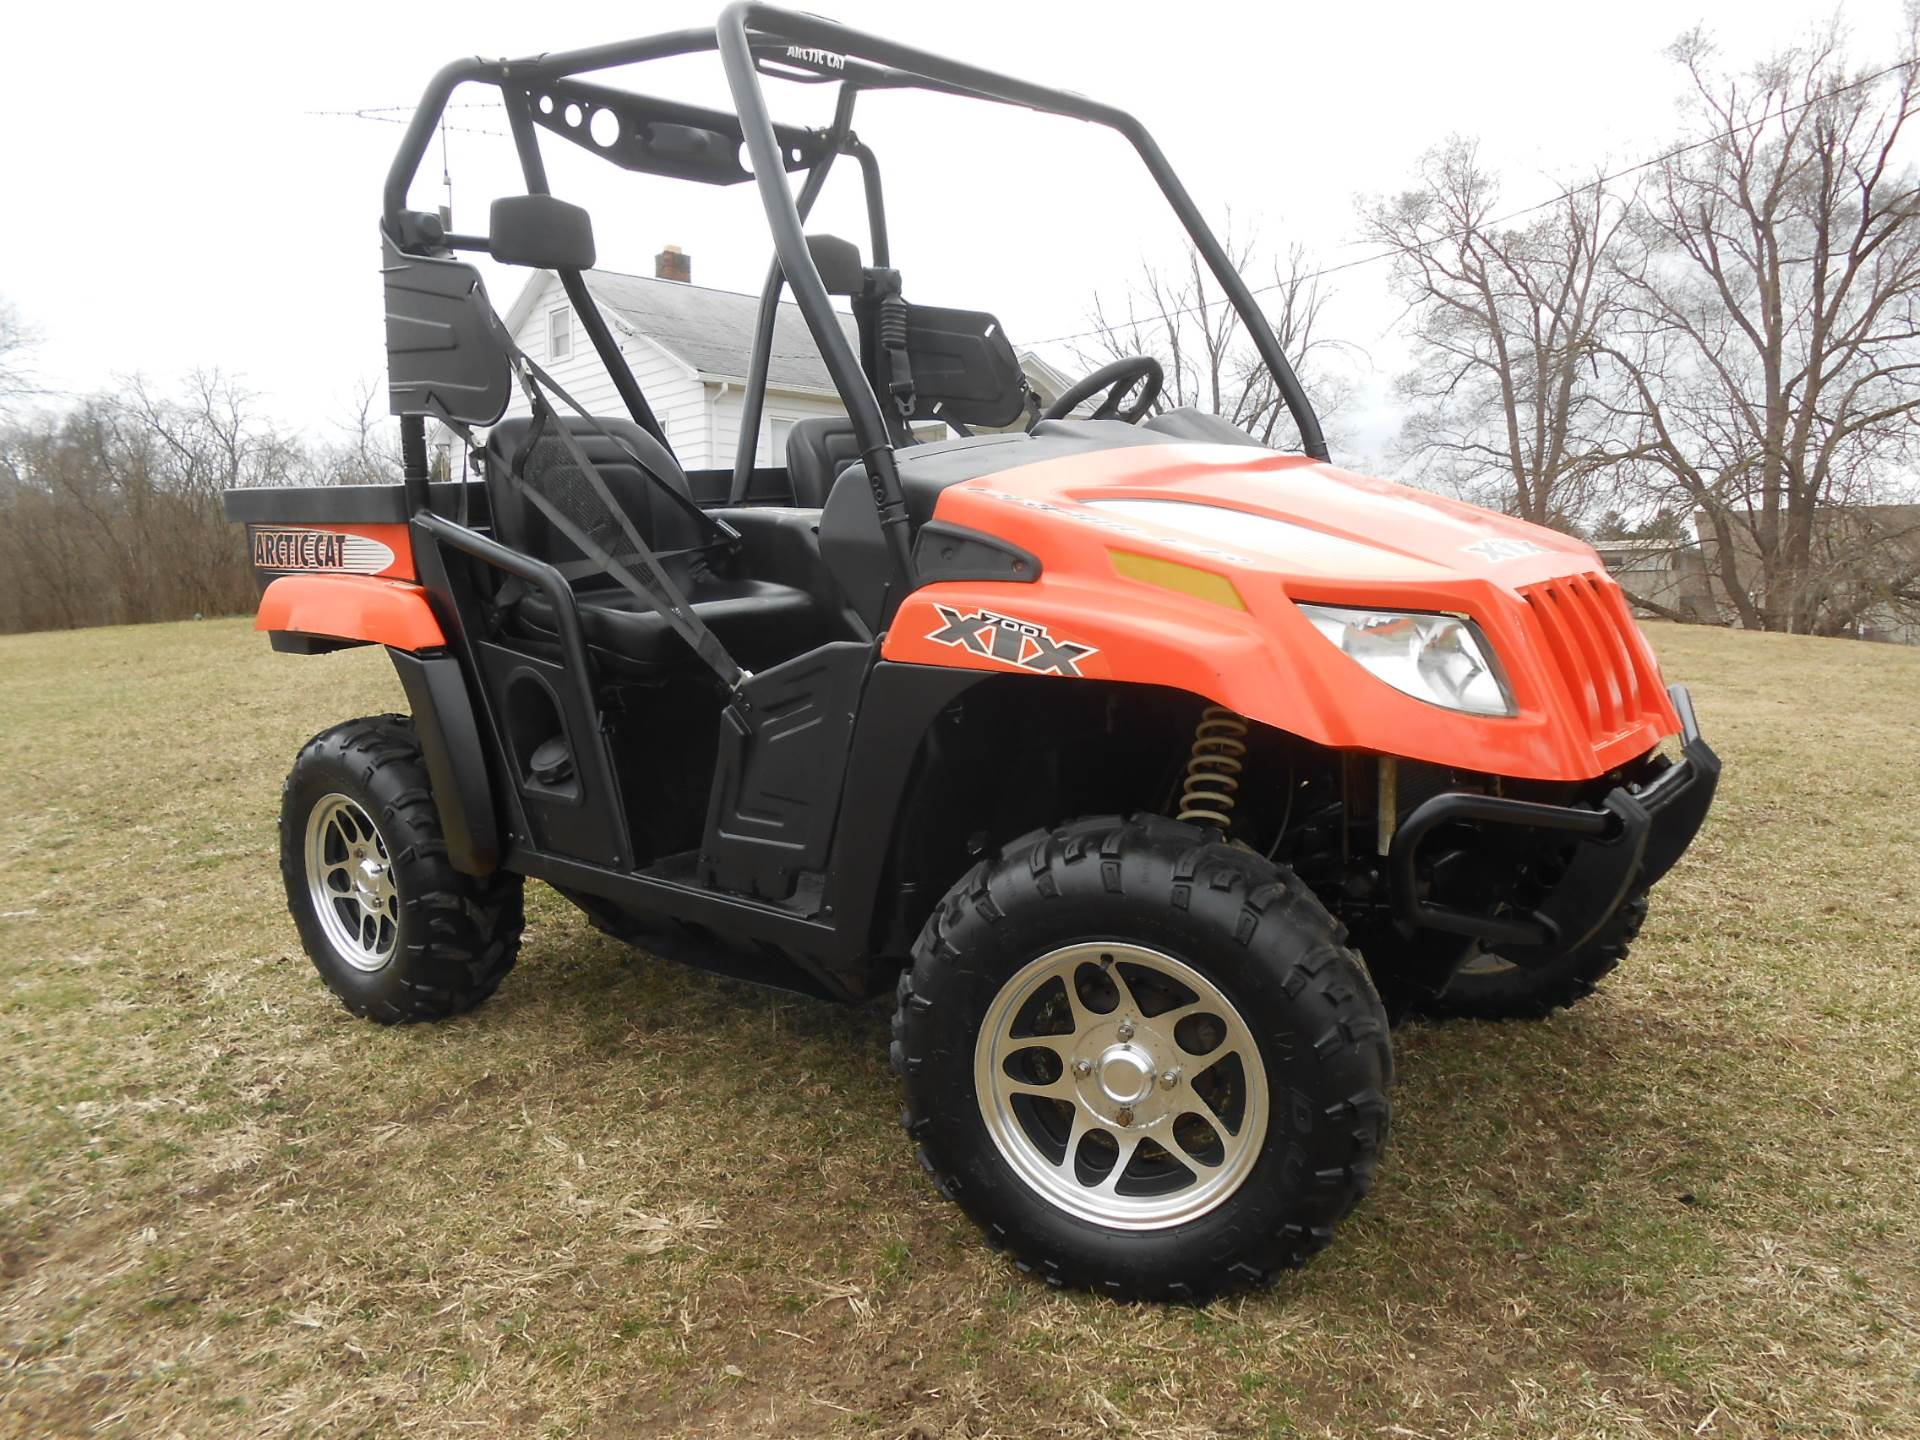 2012 Arctic Cat Prowler 700i Xtx For Sale Howell  Mi   21887